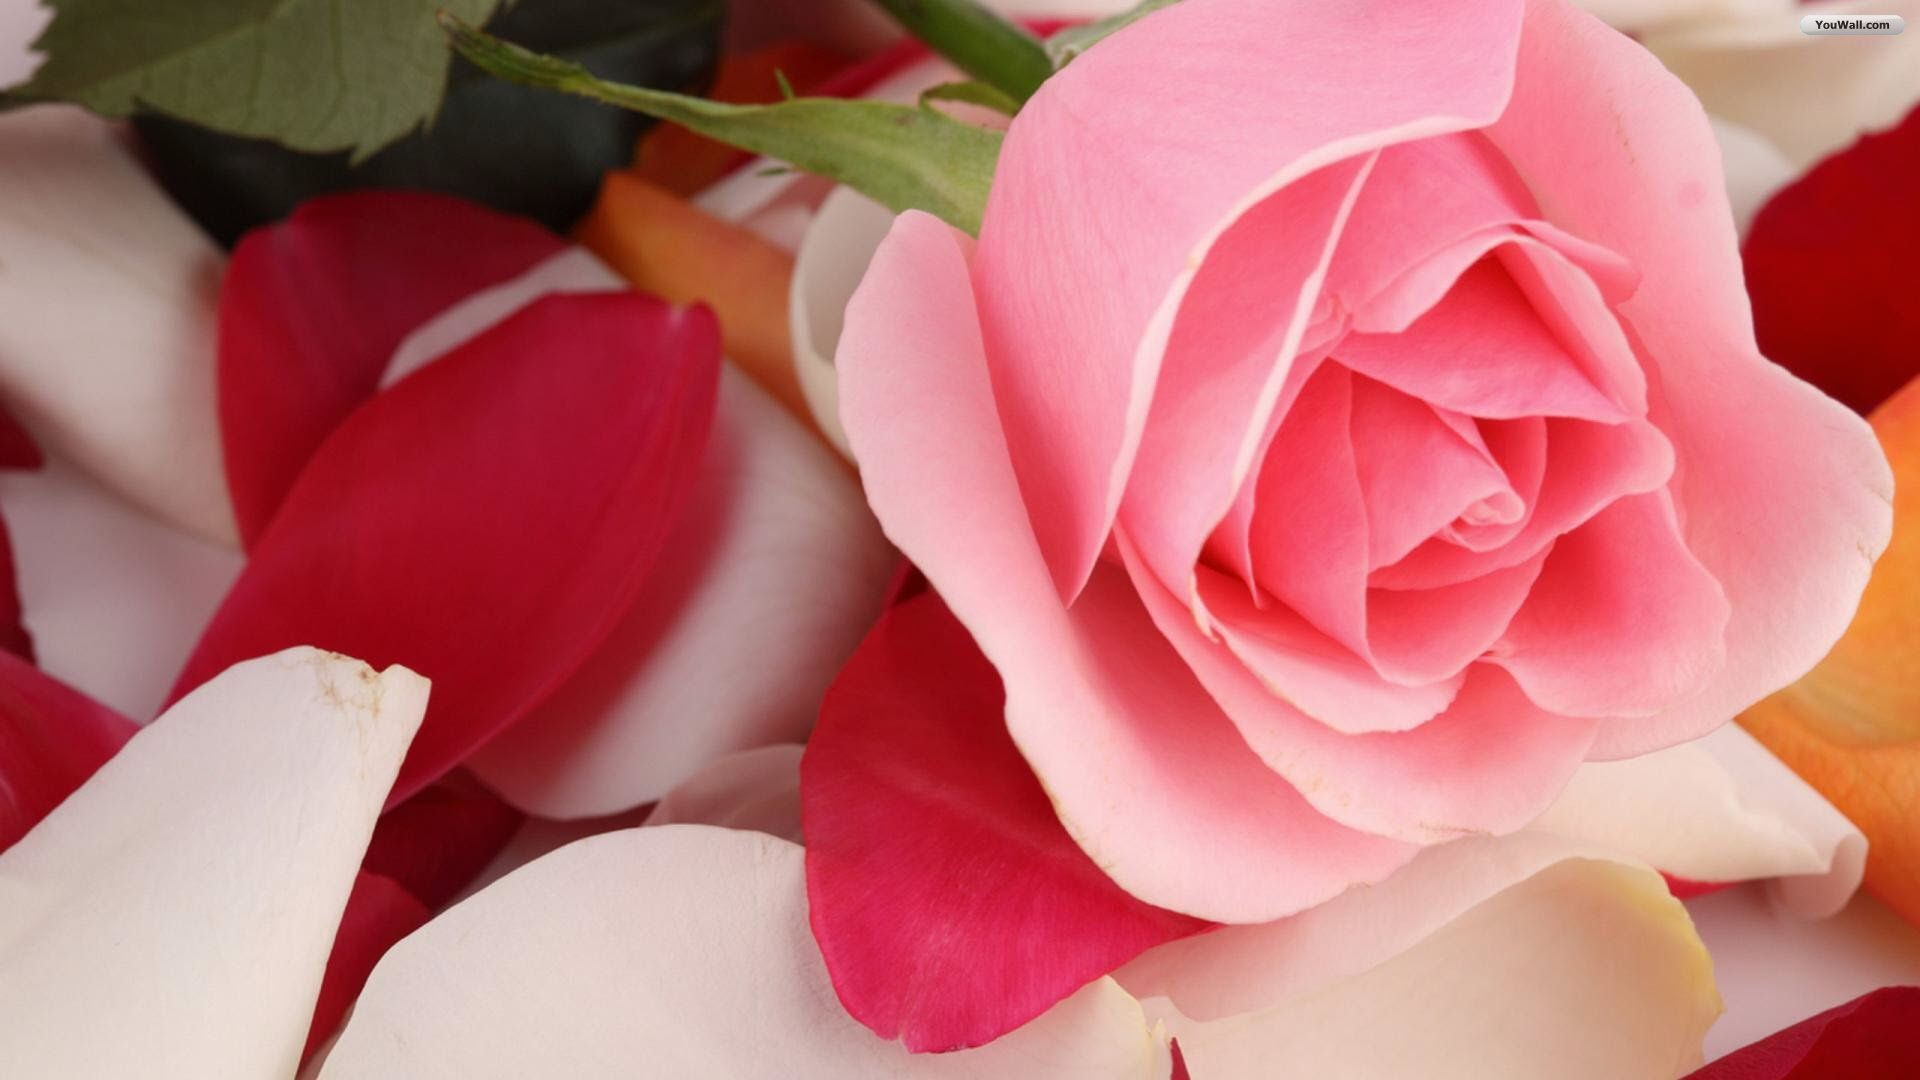 Pink Rose Backgrounds Wallpaper Imagens